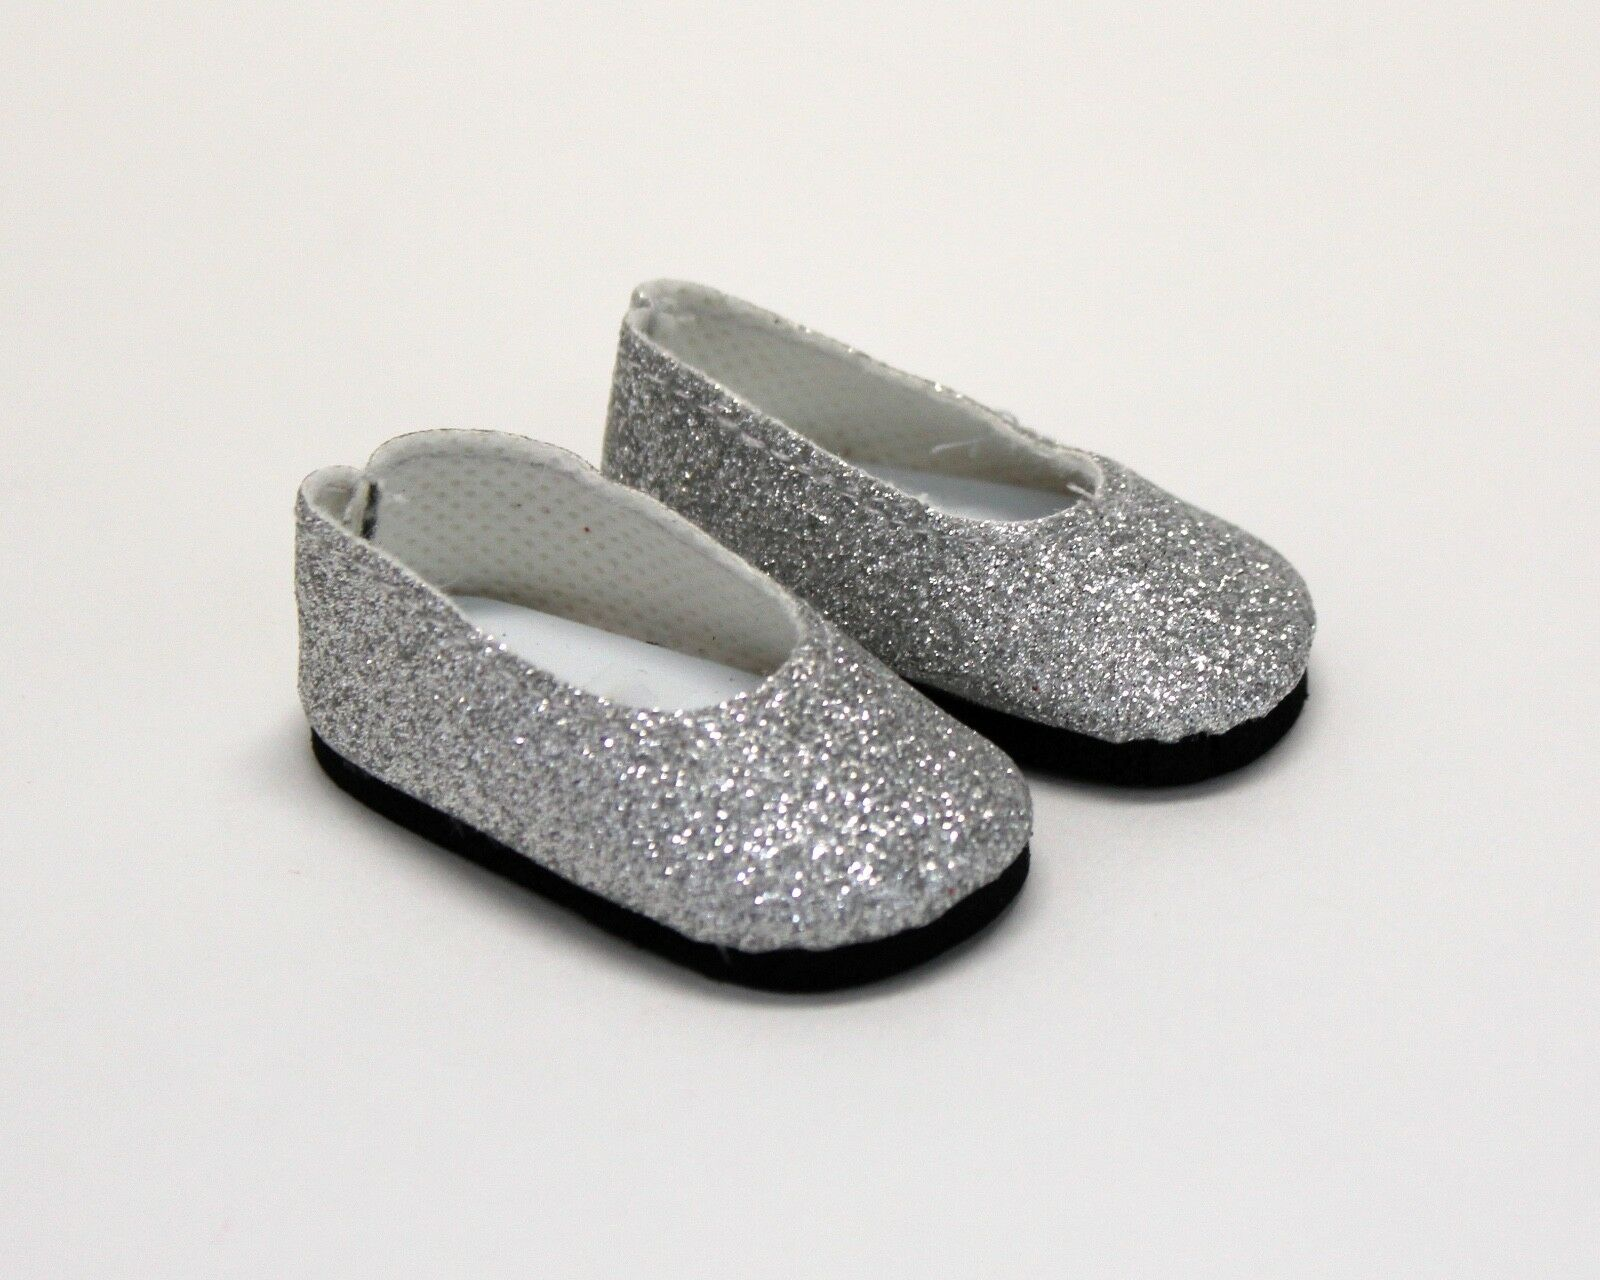 Dress-shoes-for-Wellie-Wisher-14-5-034-Dolls-Red-Silver-Glitter-Dress-Shoes thumbnail 7